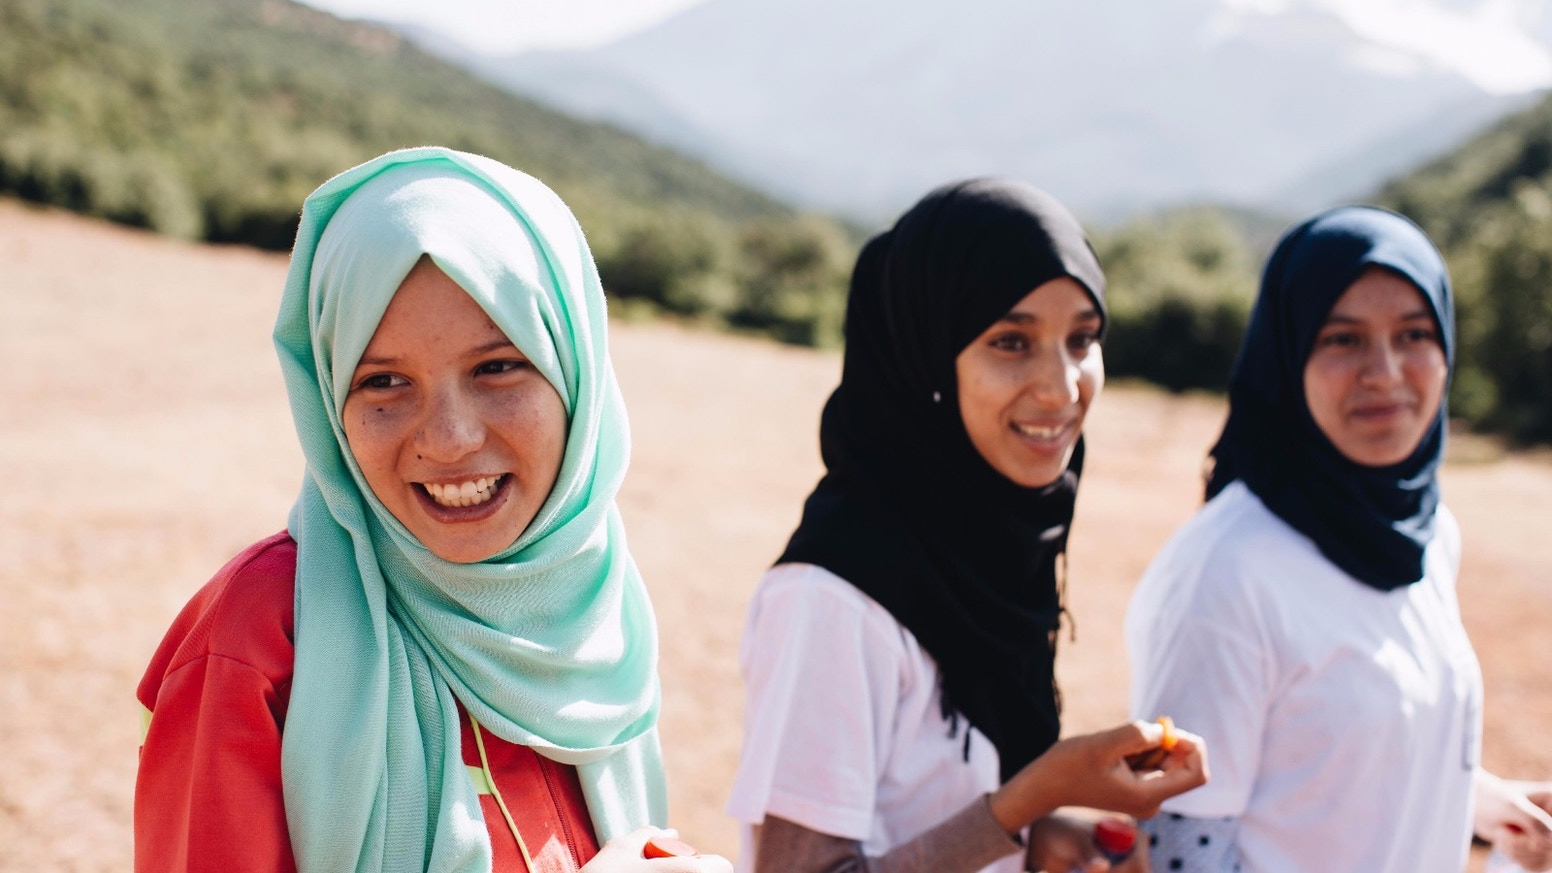 Stories of hope, love and determination from an inspiring project in rural Morocco helping teenage girls access an education.